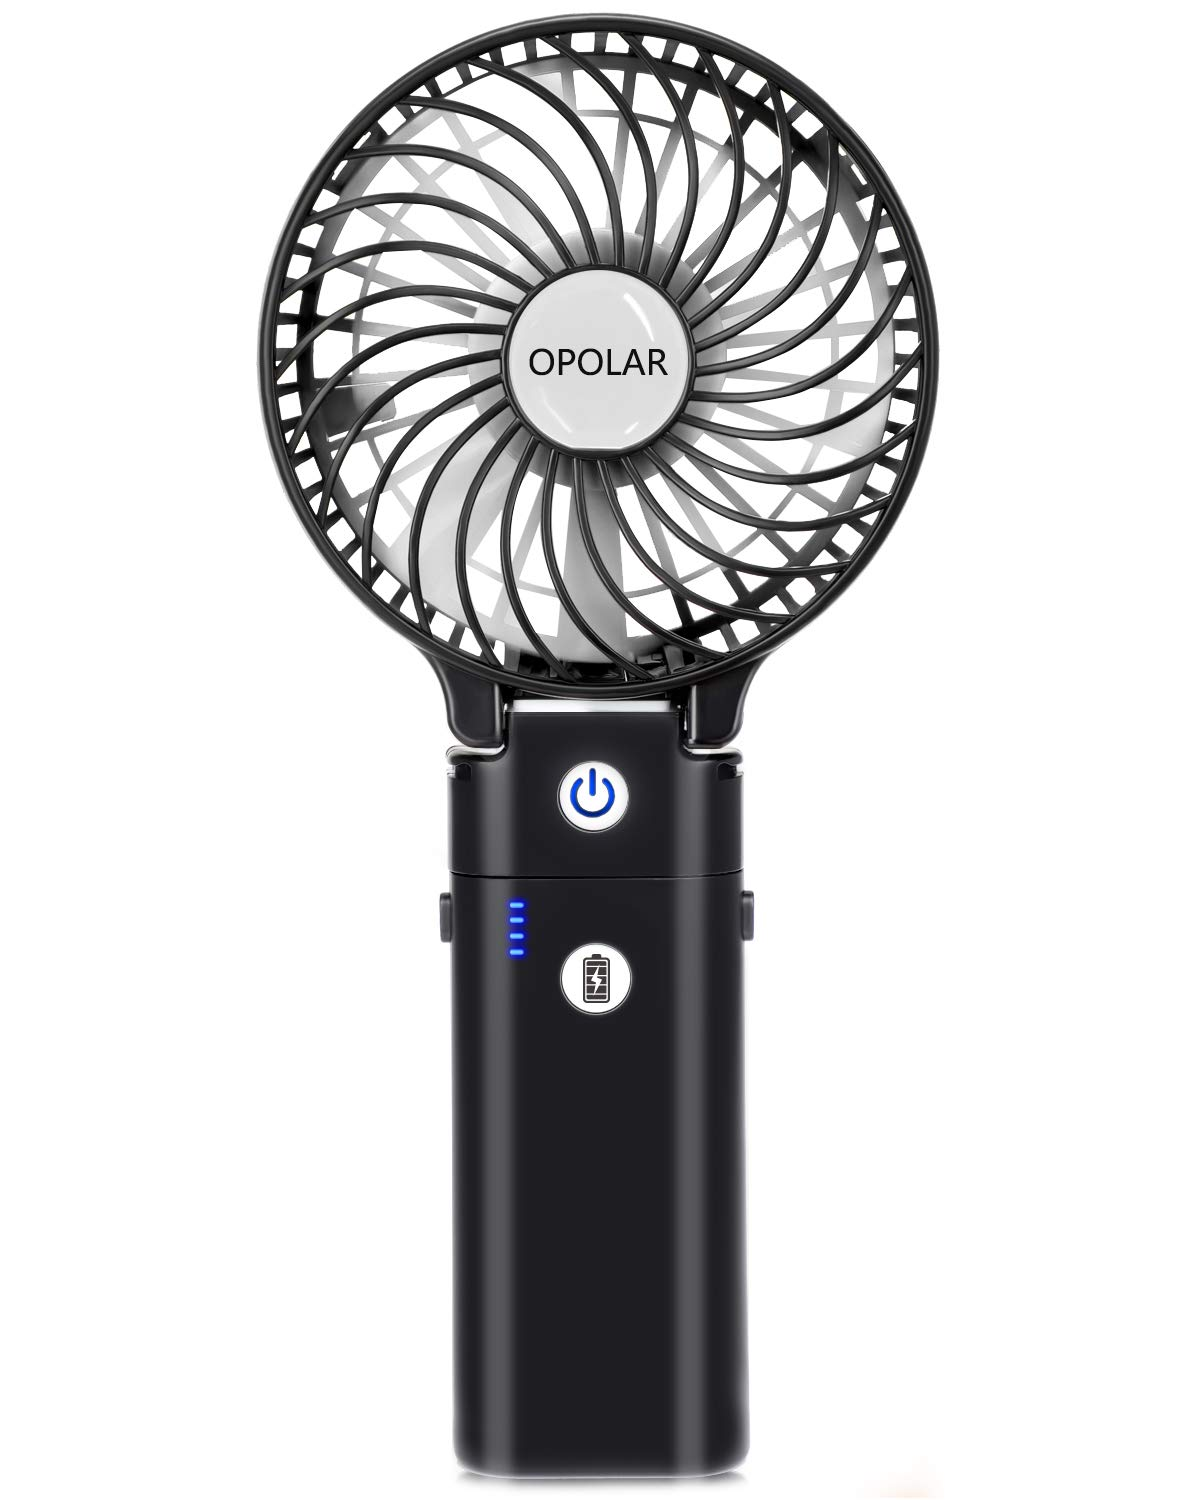 OPOLAR Handheld Fan with 5200mAh Power Bank, Battery Operated Fan with 5-20 Hours Working Time,3 Setting, Strong Wind,Foldable Design, for Travel, Camping and Outdoor Activities 4335396805